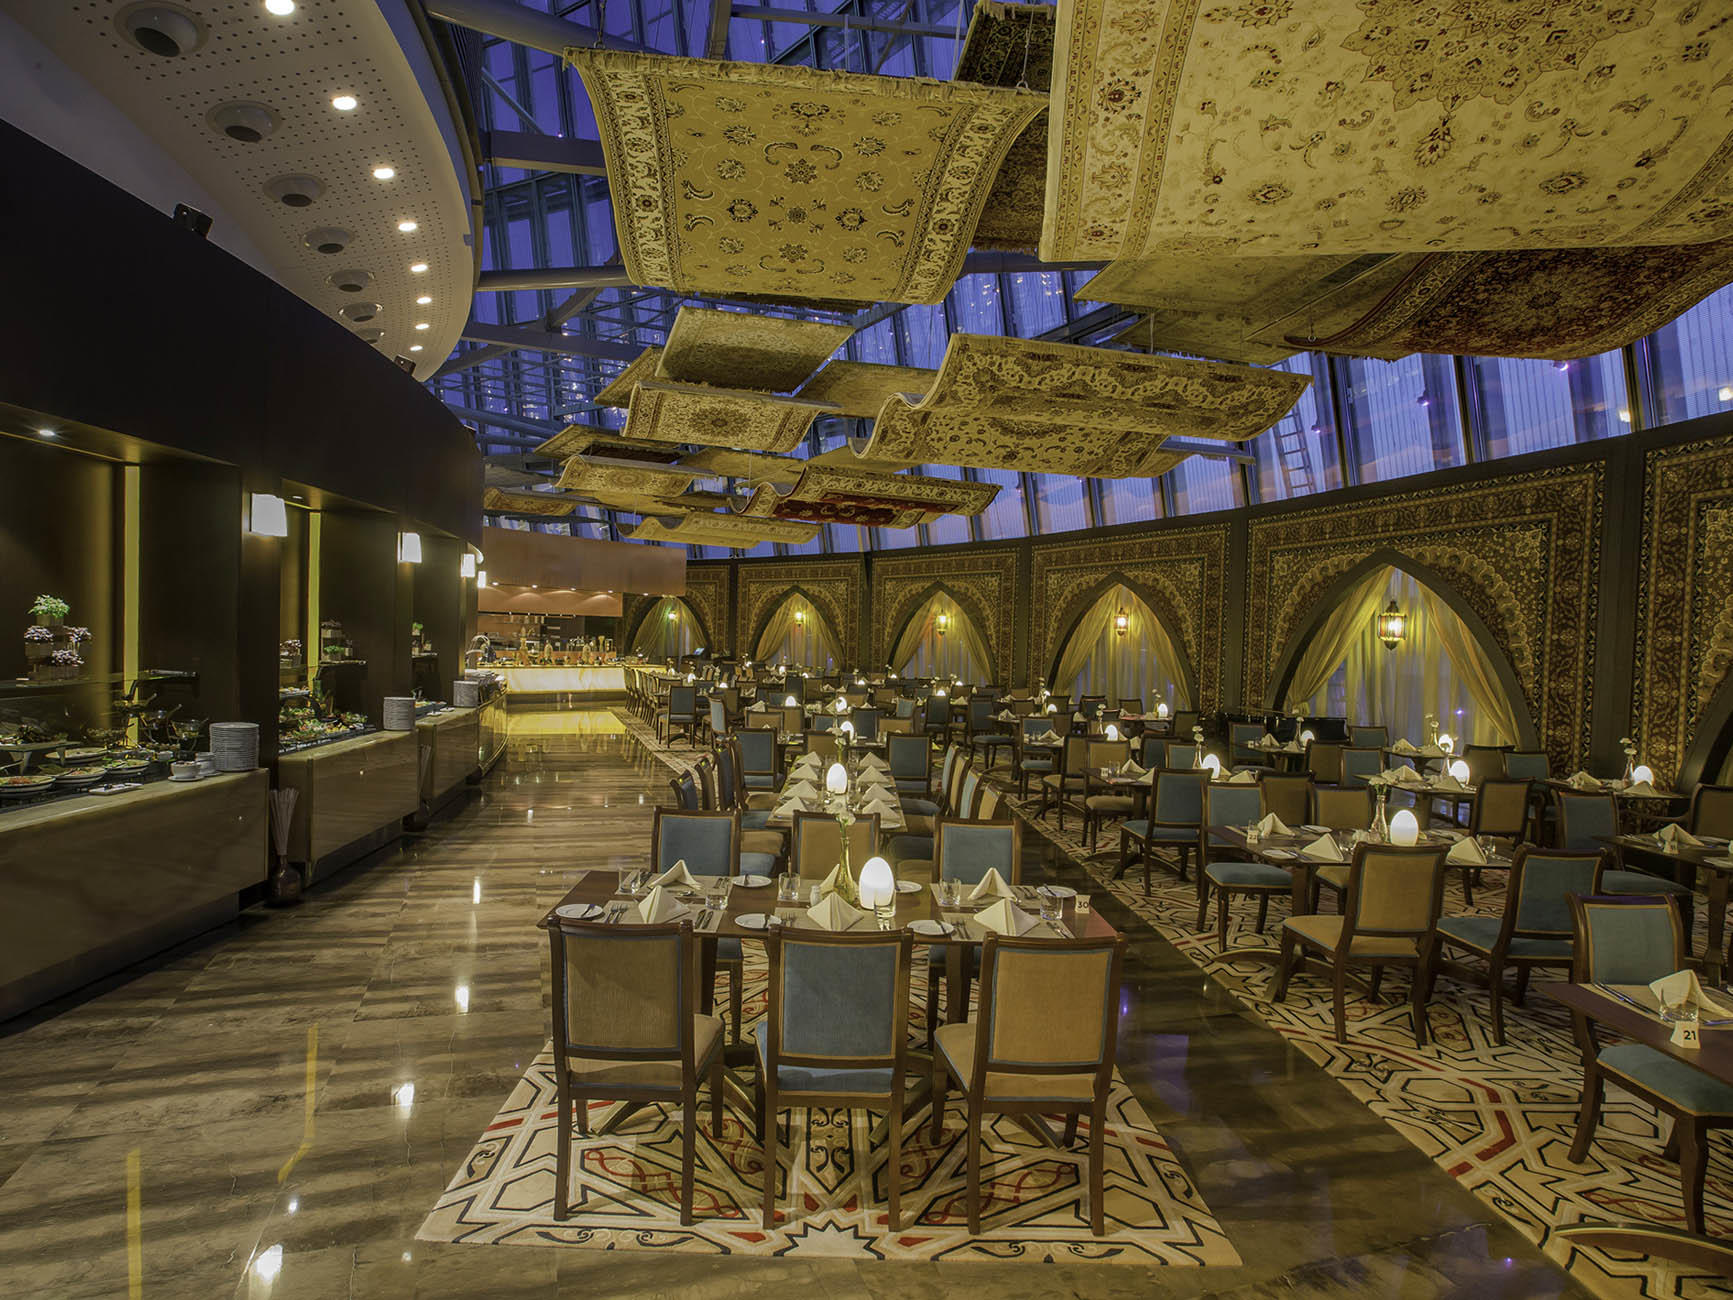 Flying Carpet Restaurant at The Torch Doha Hotel in Qatar